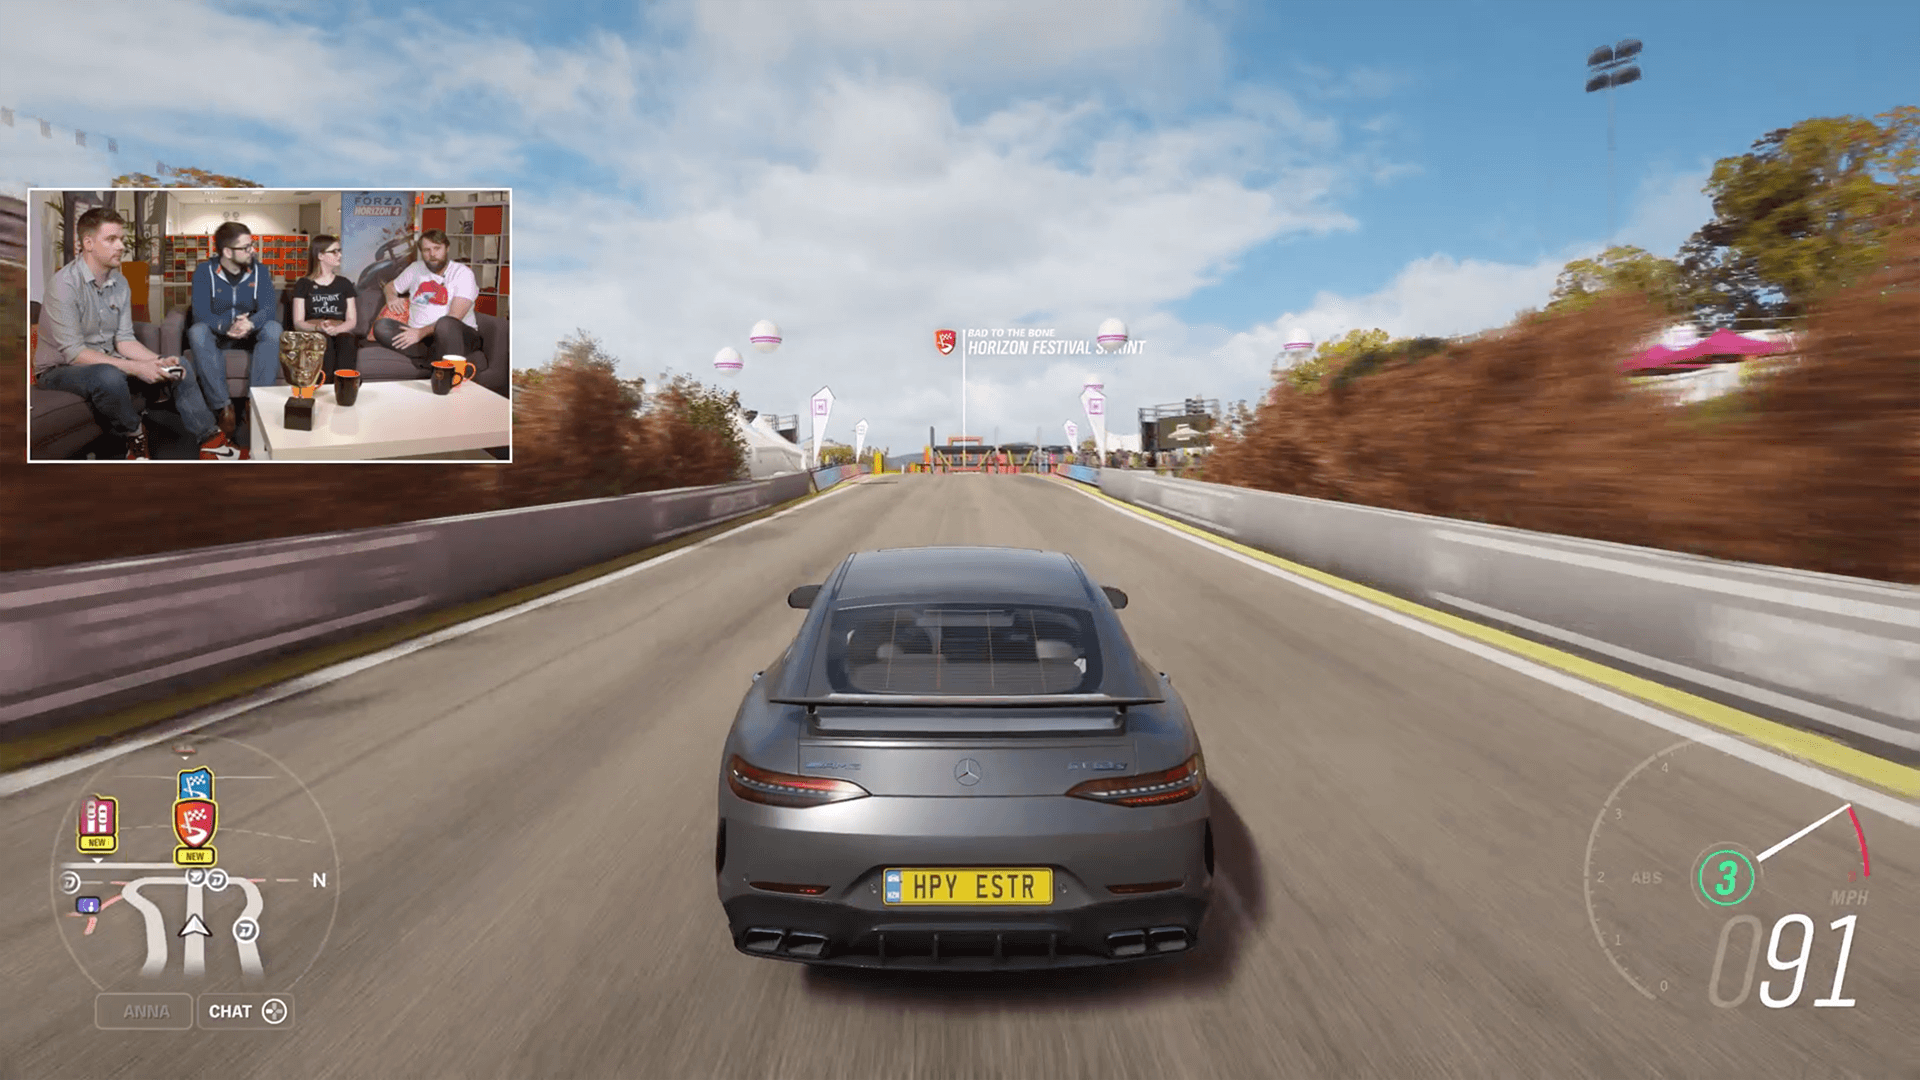 Forza horizon 4 series 8 preview new mercs modes and painting options